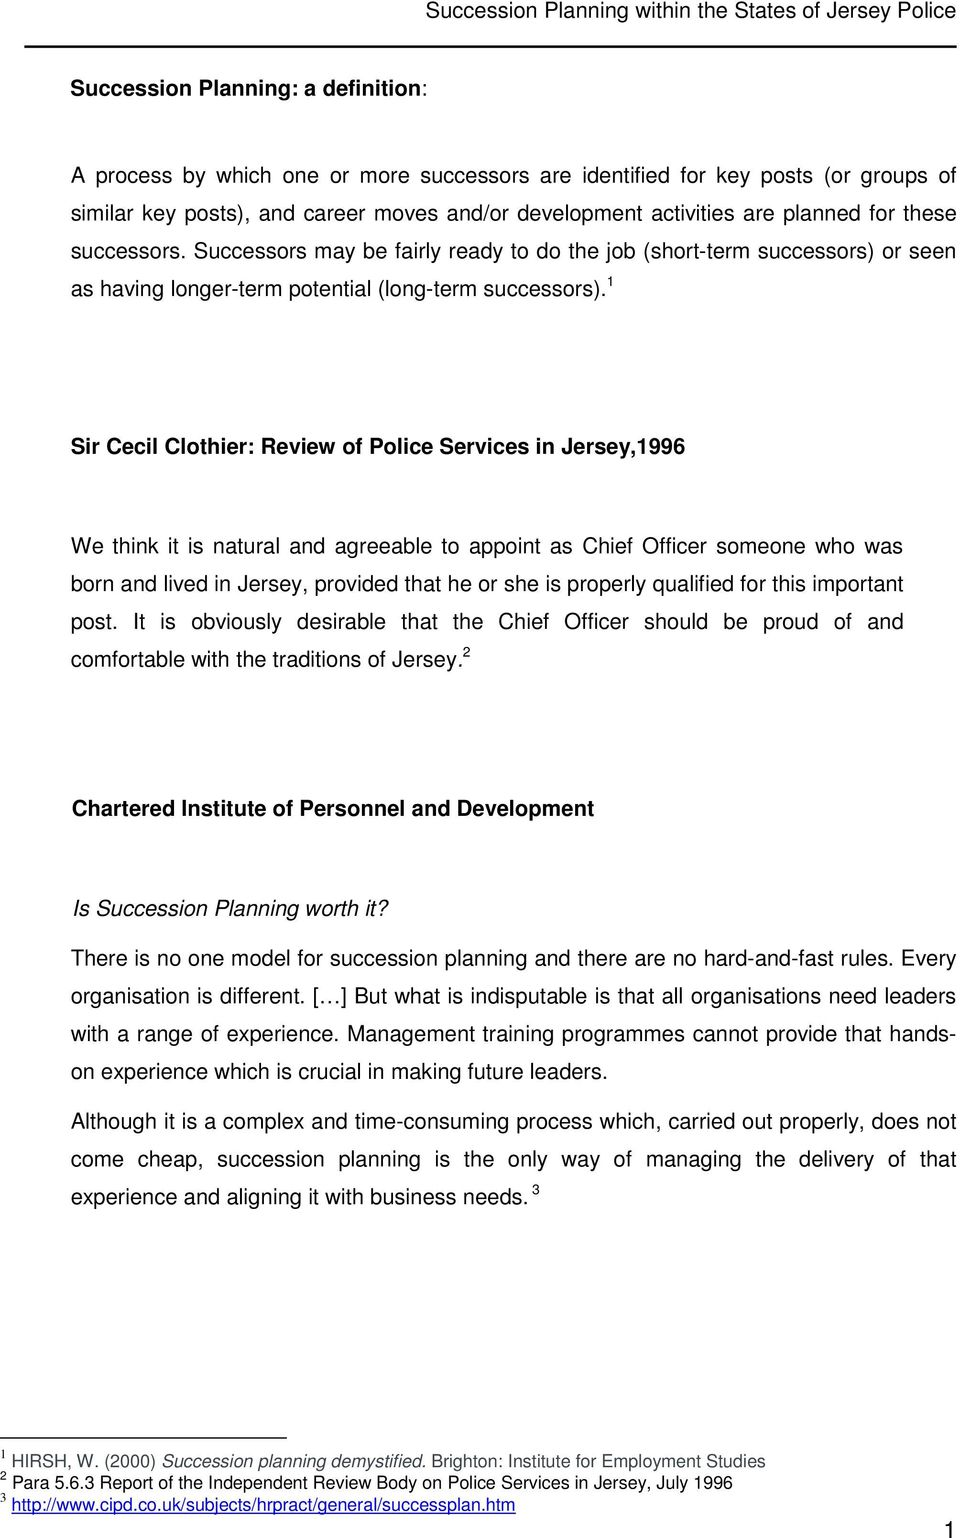 1 Sir Cecil Clothier: Review of Police Services in Jersey,1996 We think it is natural and agreeable to appoint as Chief Officer someone who was born and lived in Jersey, provided that he or she is